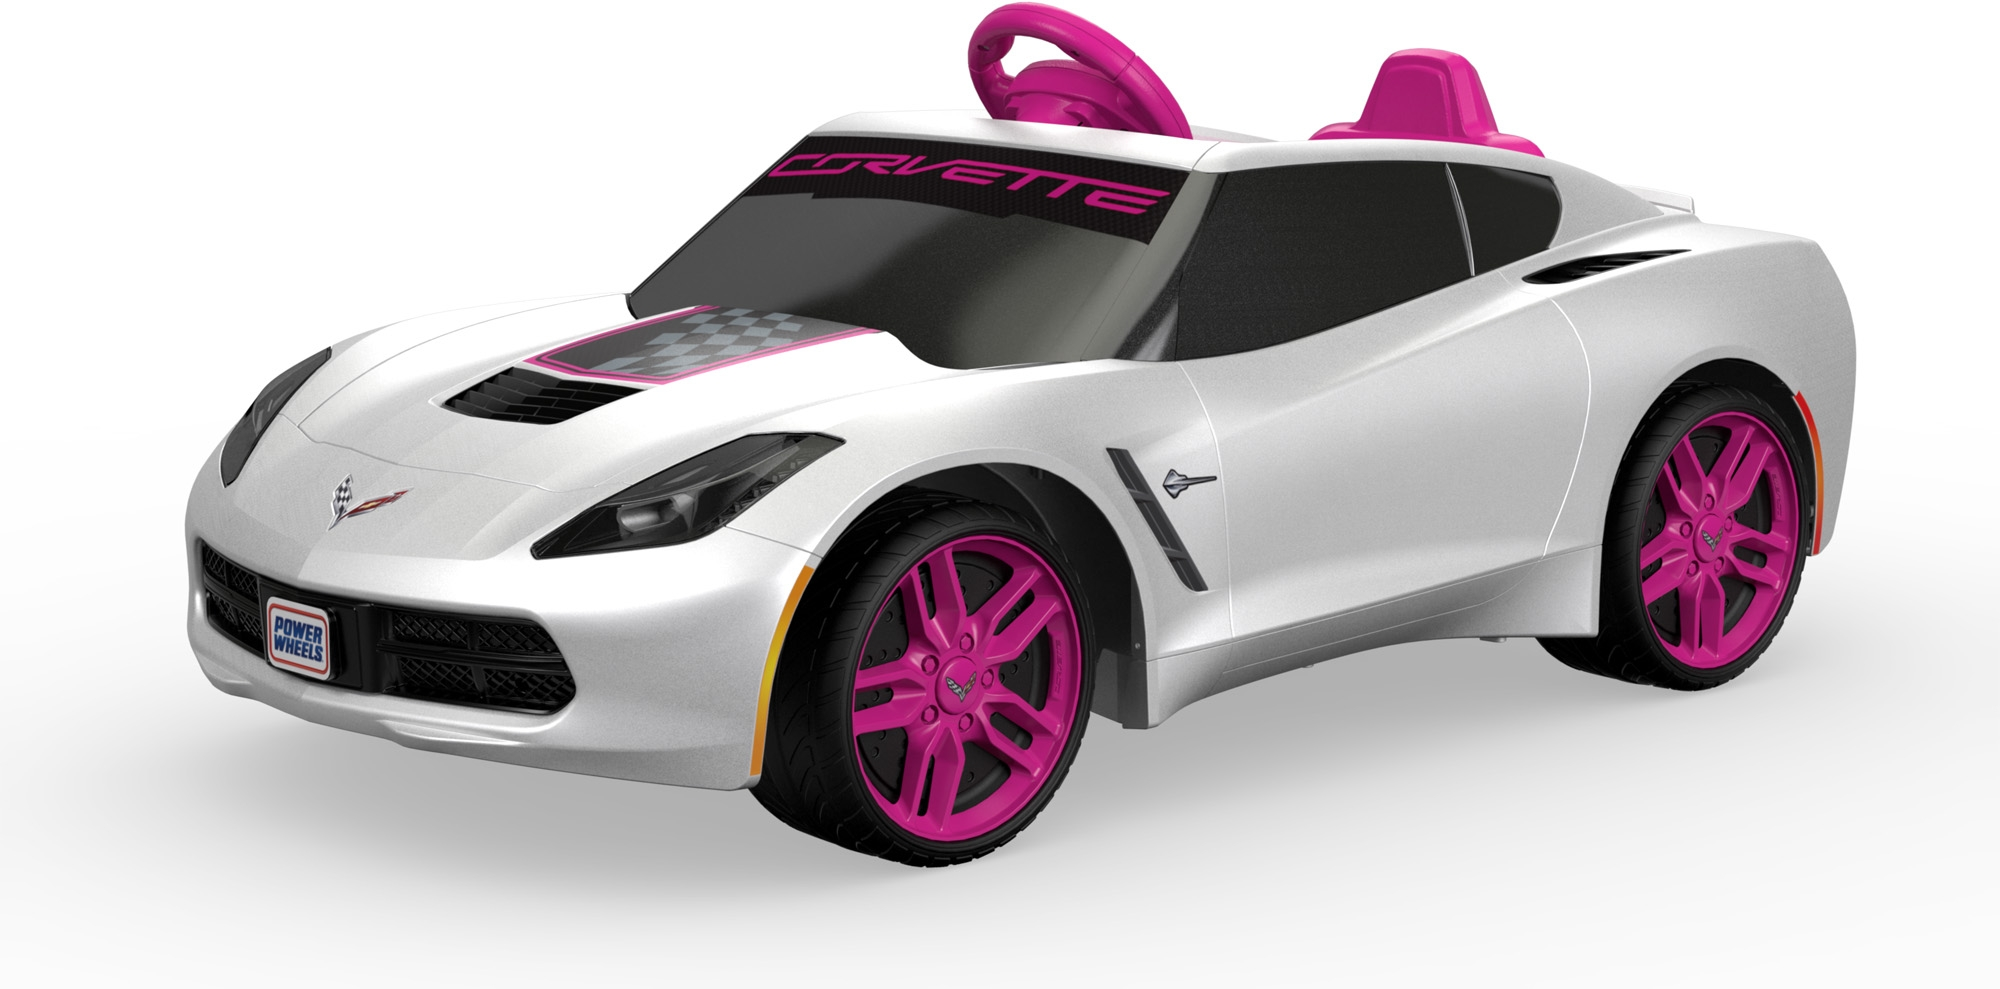 electric cars for kids ride on corvette power big wheels toddler toy play car